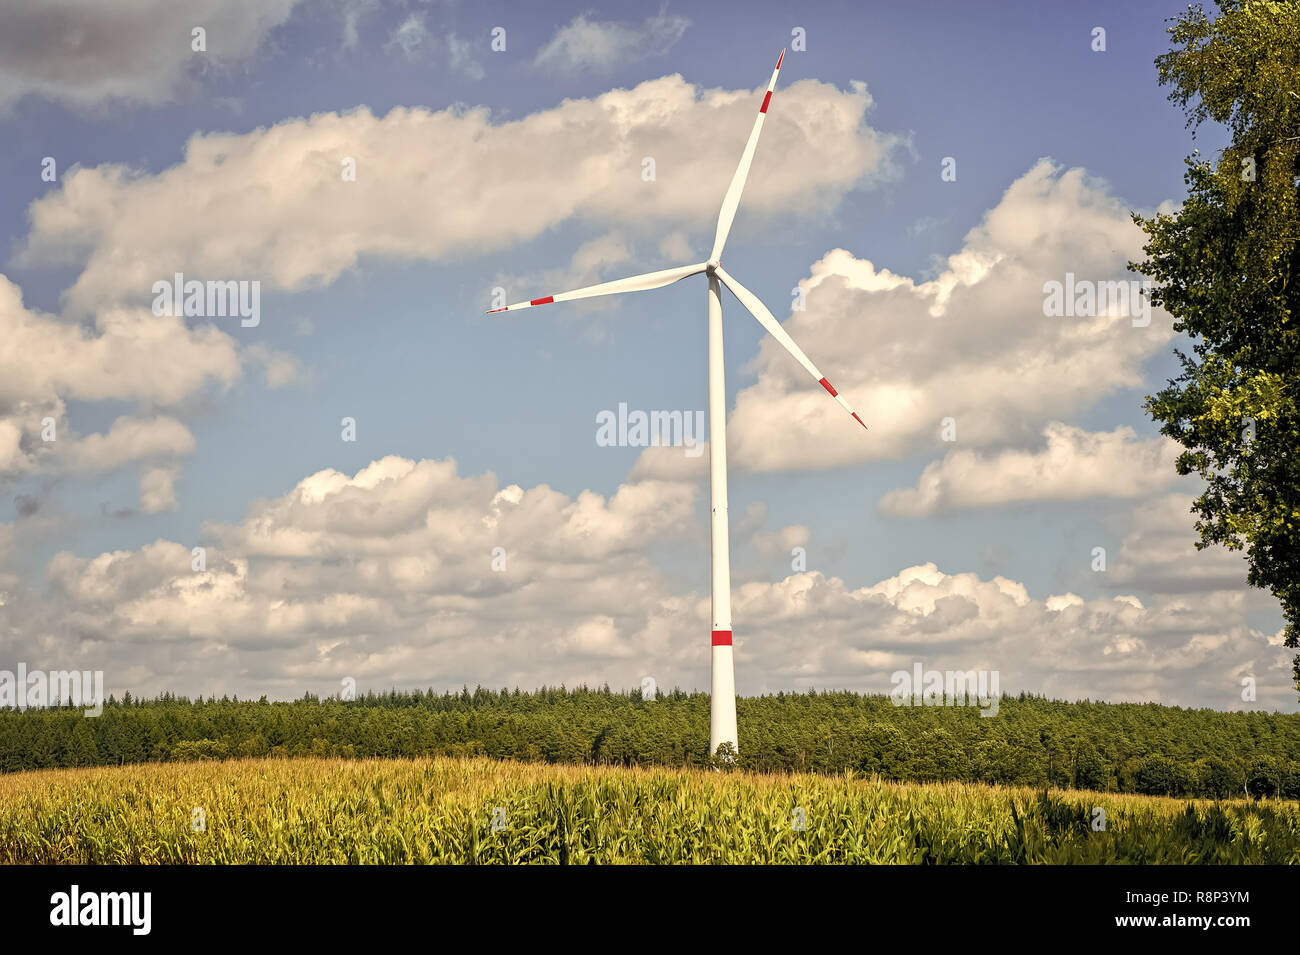 Eco power, green technology concept. Turbine on field on cloudy blue sky. Alternative energy source. Global warming, climate change. Wind farm in Lower Saxony, Germany. - Stock Image